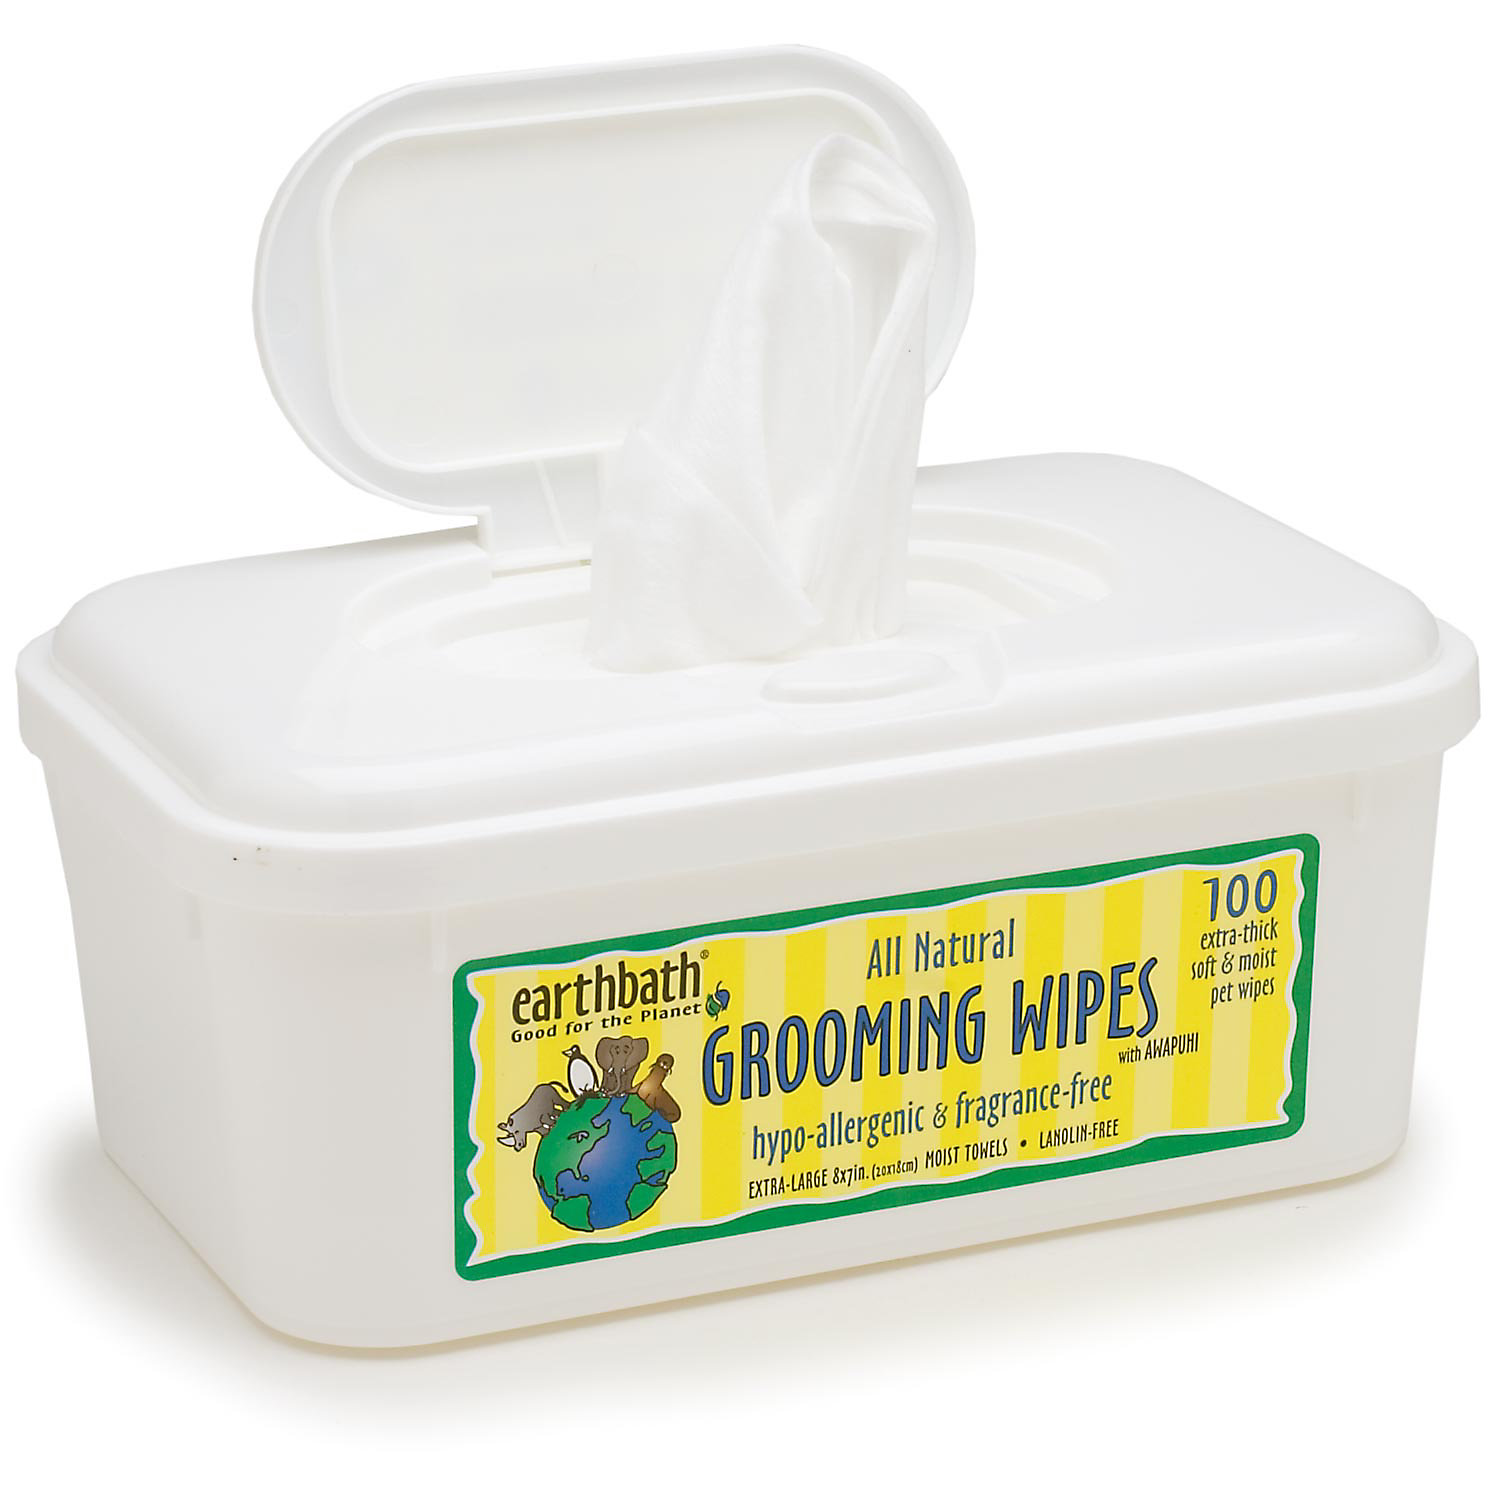 Earthbath All Natural Hypo Allergenic And Fragrance Free Grooming Wipes